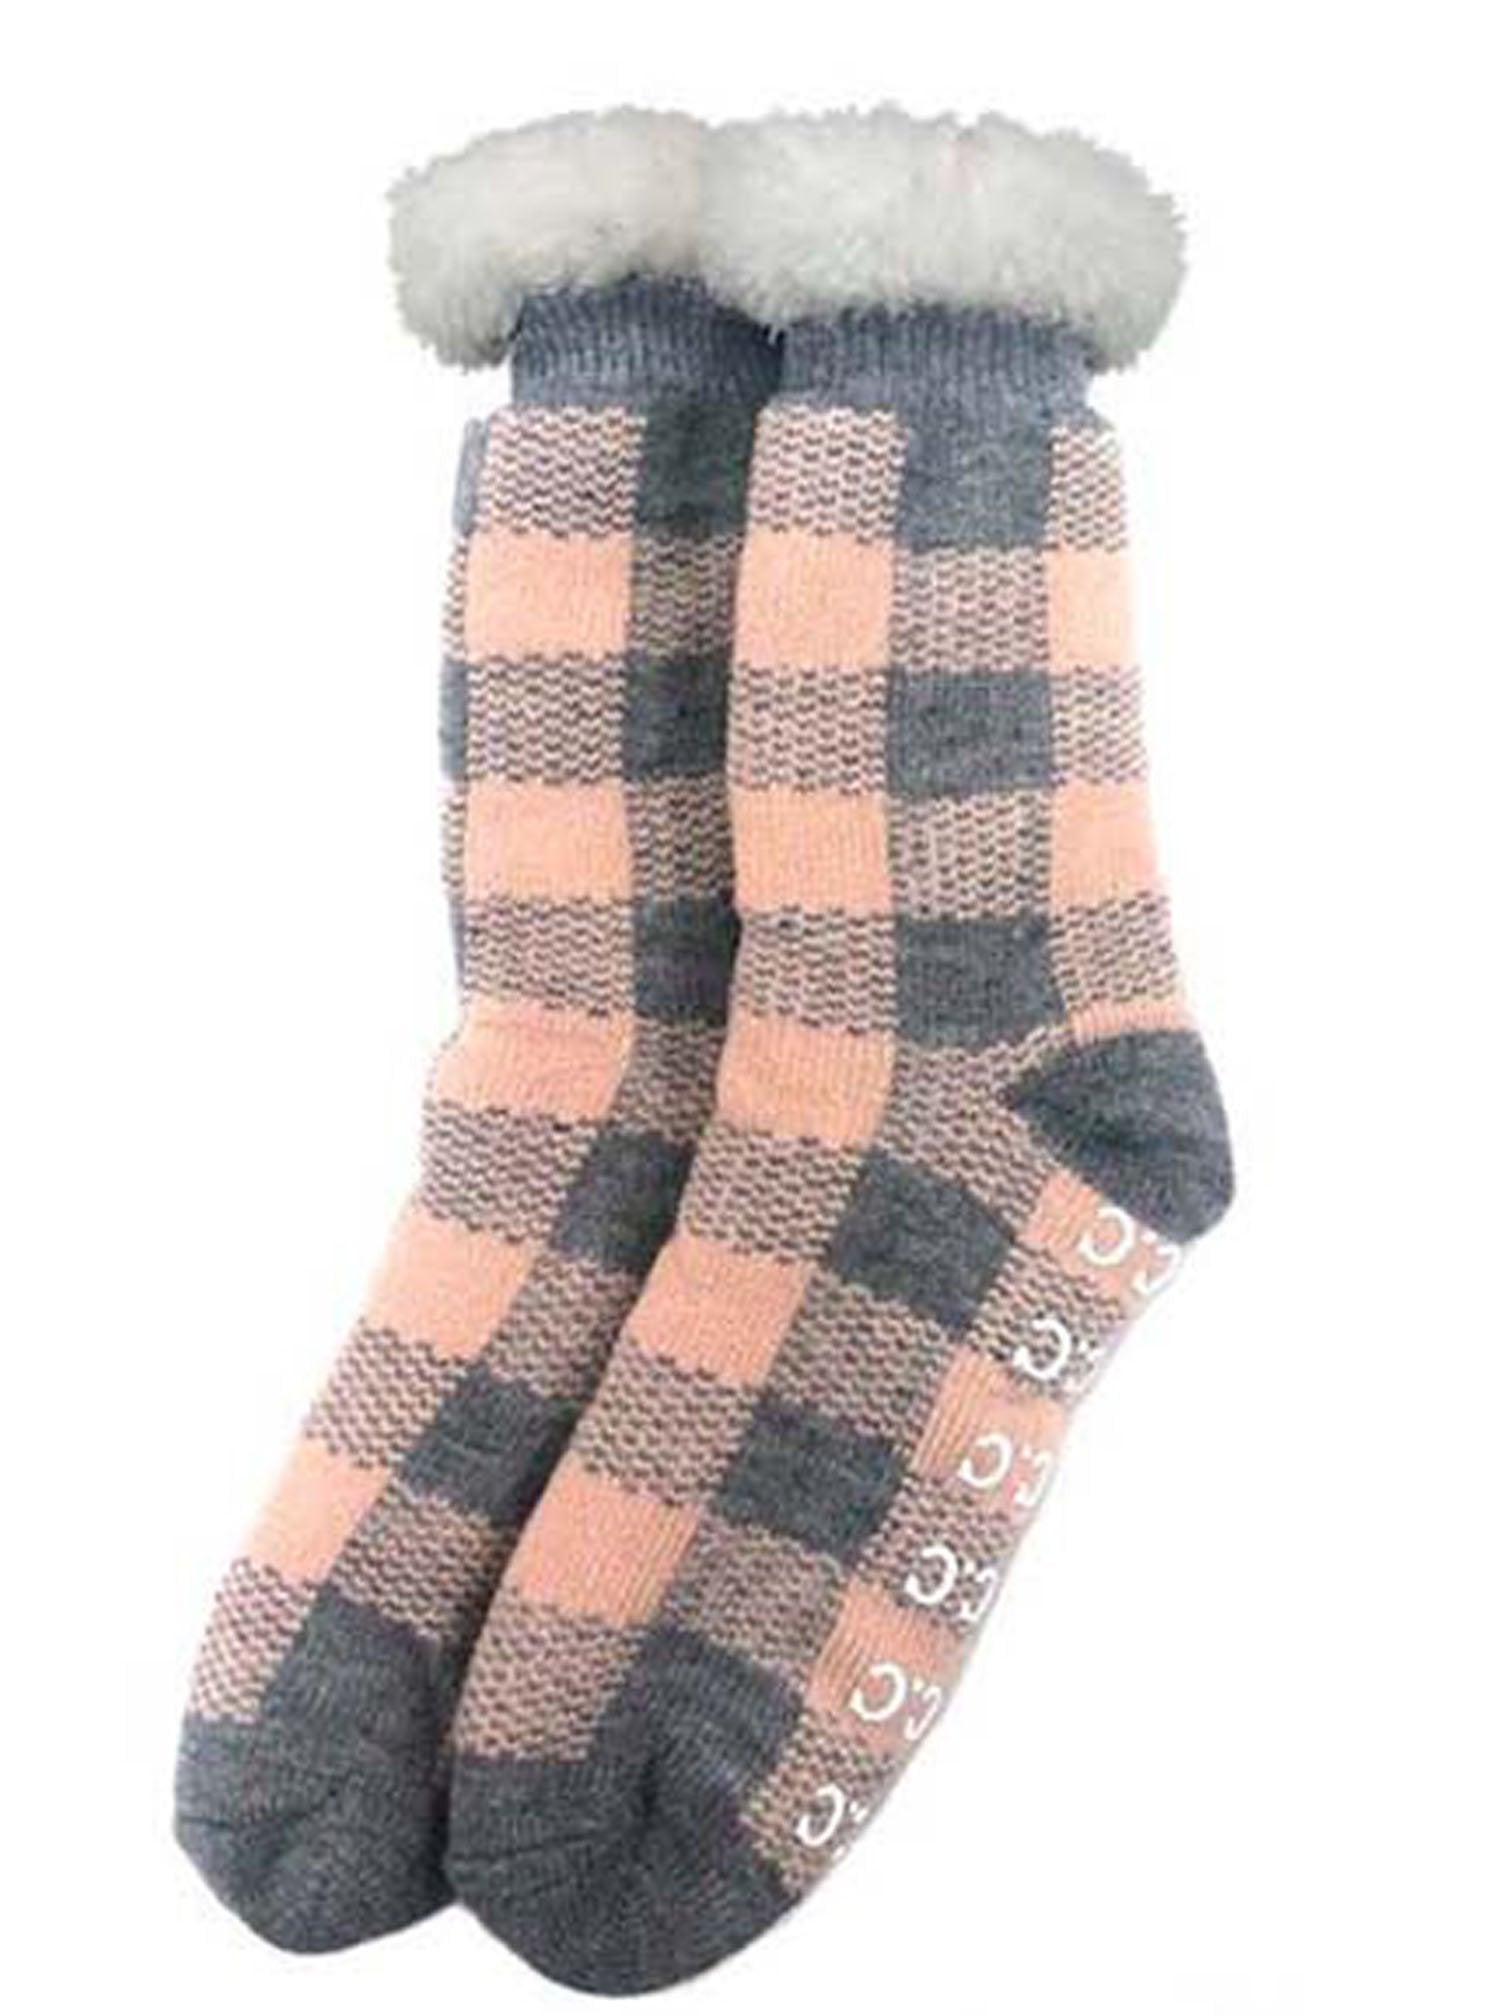 SL-25 C.C Sherpa Socks Buffalo Plaid Grey/Indi Pink